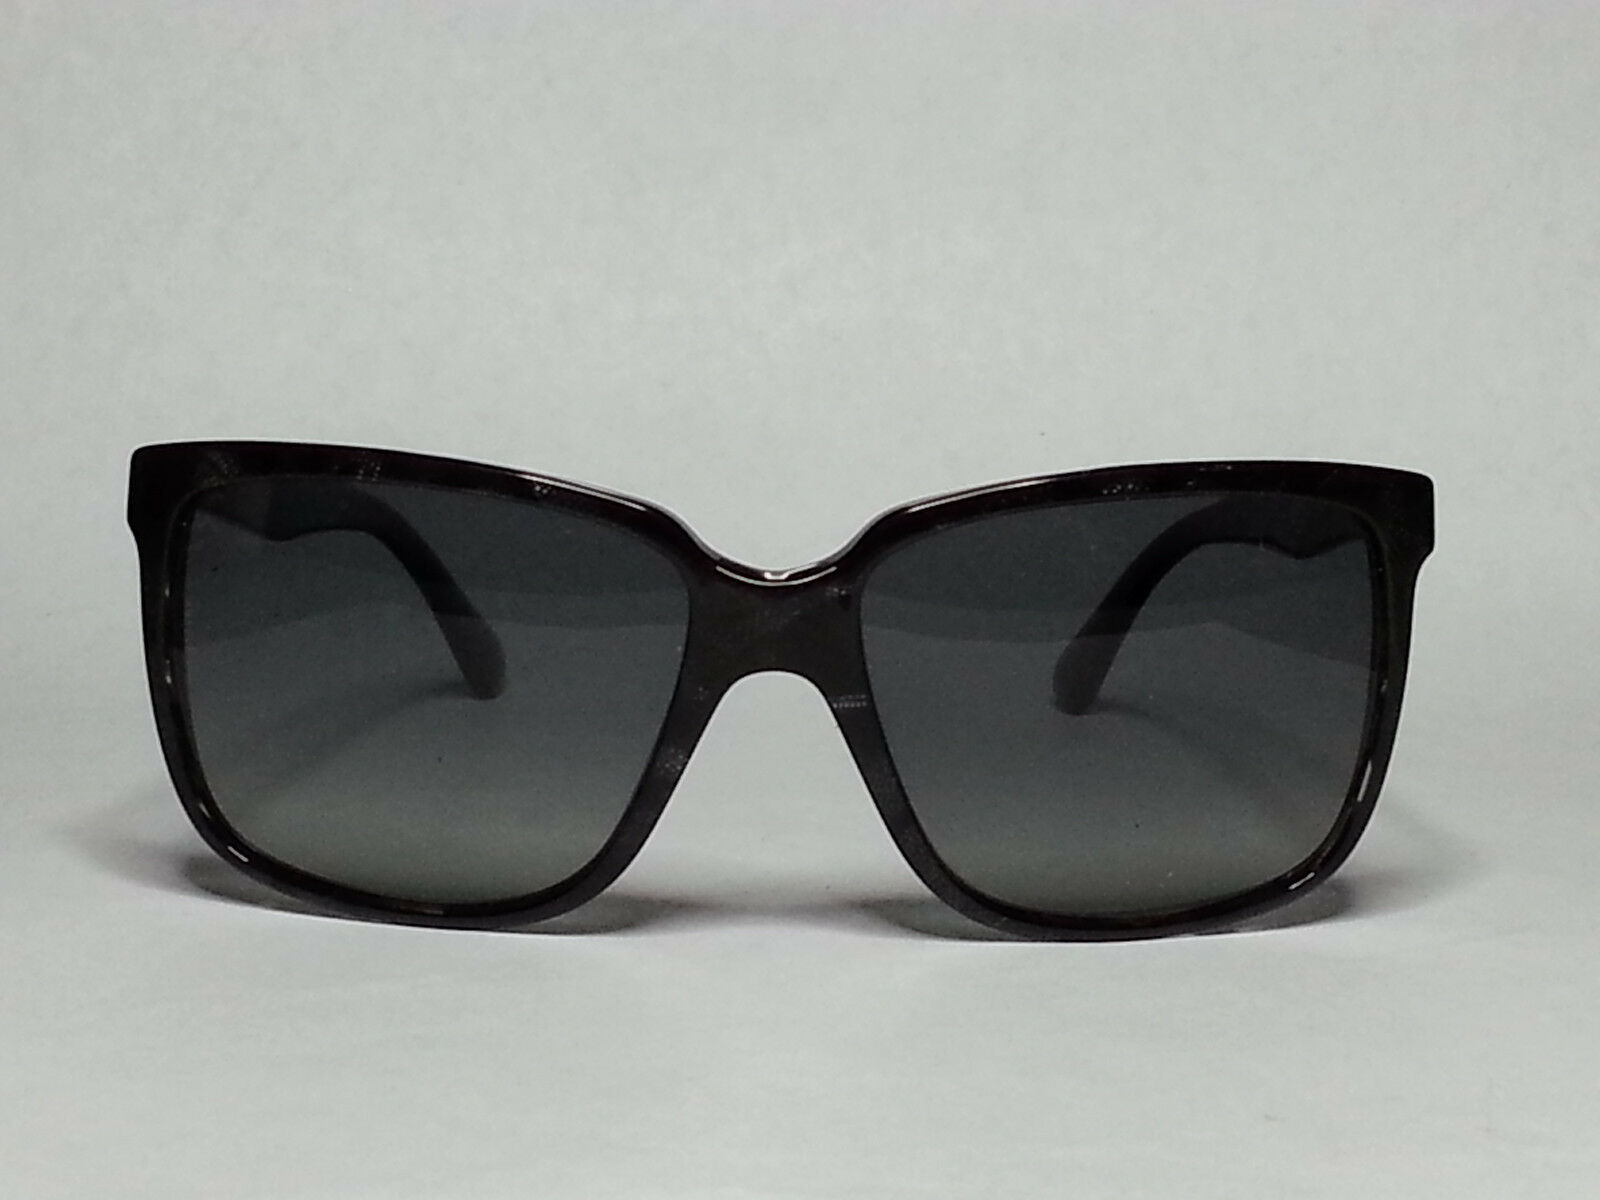 Dolce&Gabbana POLARIZED black sunglasses with spring loaded hinges ITALY